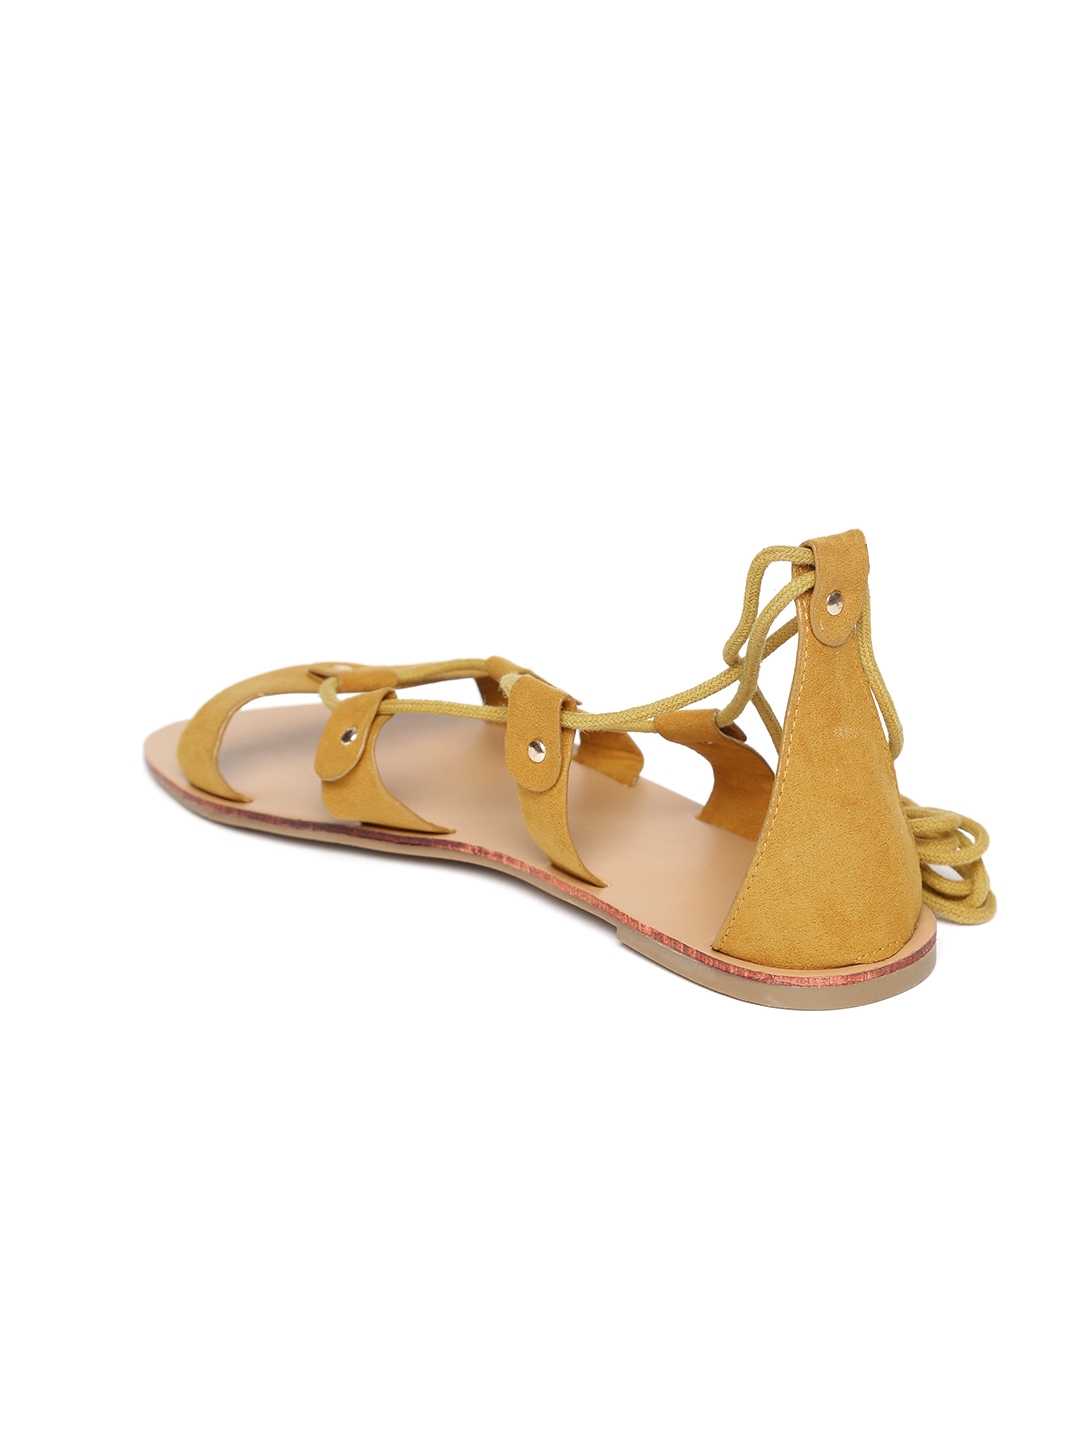 0e07d94cb22e5 Buy FOREVER 21 Women Mustard Yellow Solid Open Toe Flats - Flats for ...